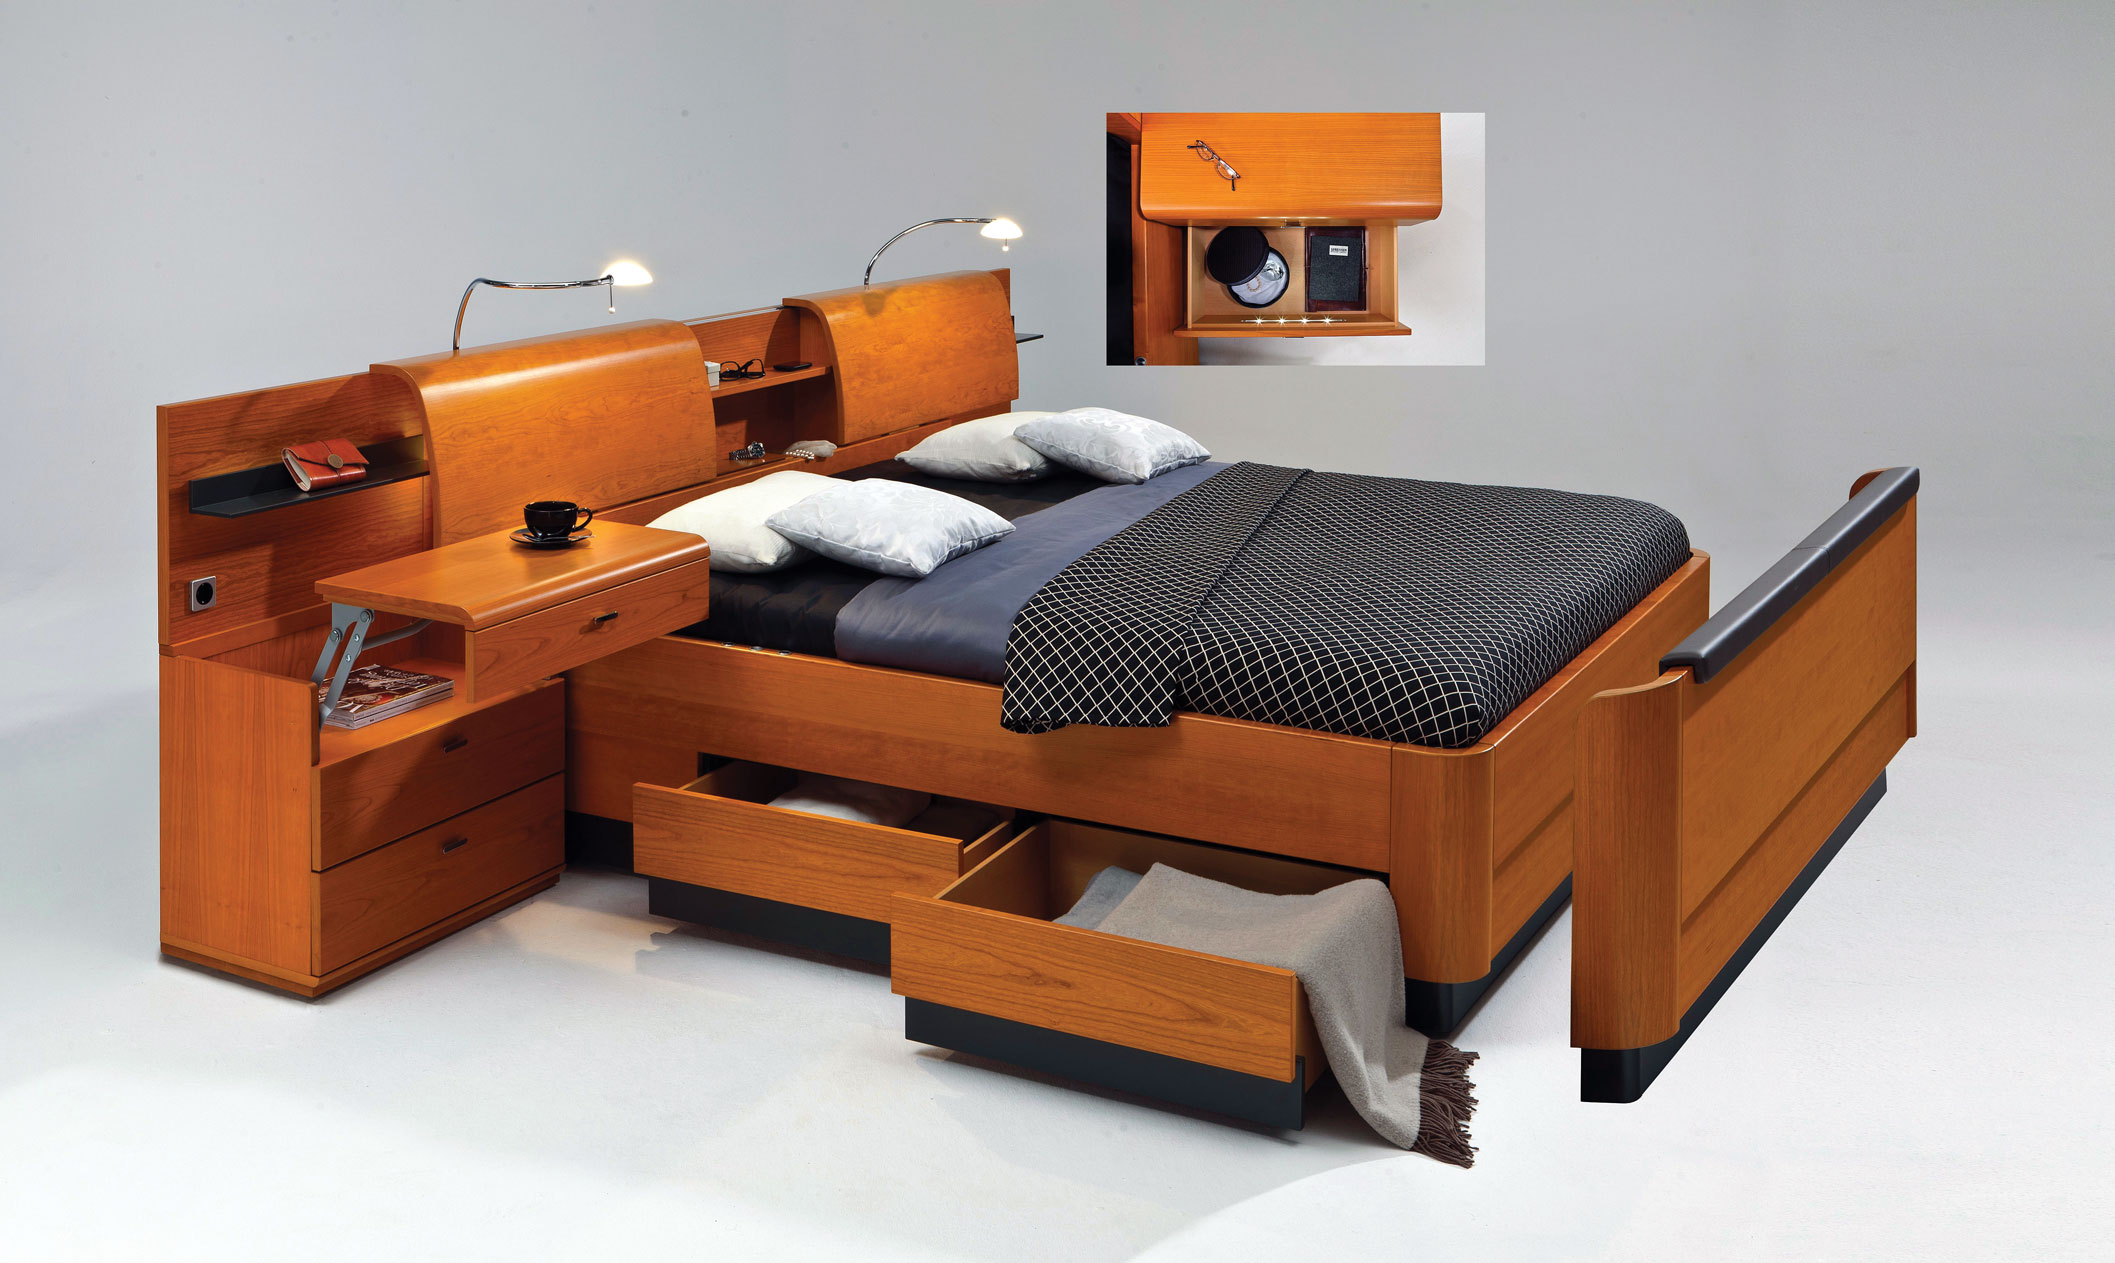 Multifunctional Furniture For Small Spaces HomesFeed